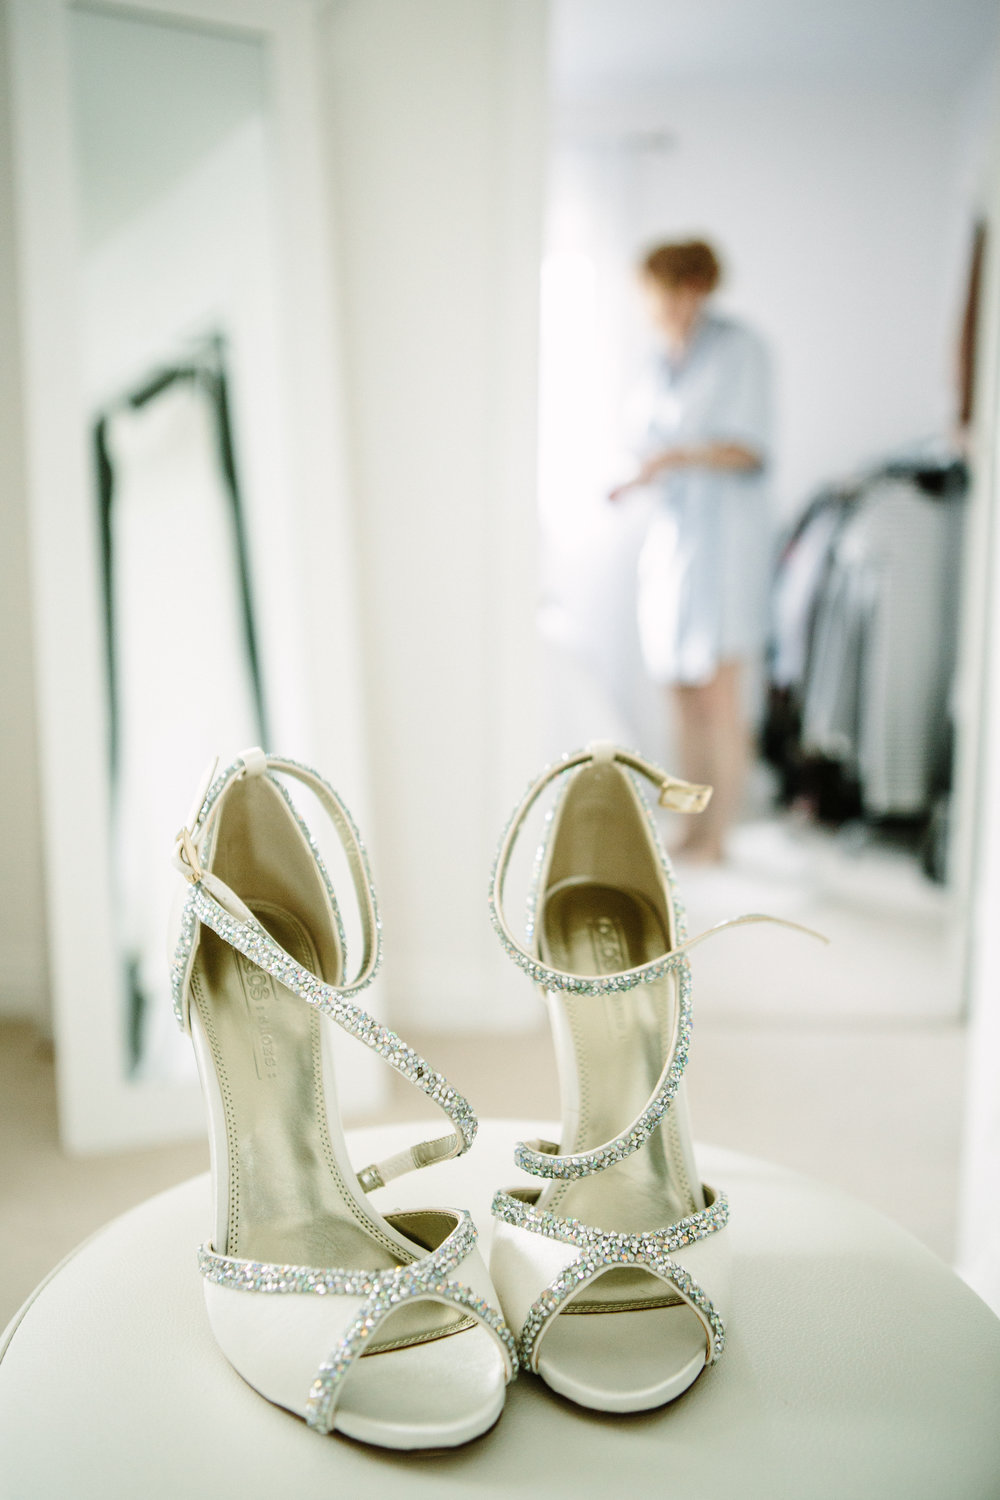 kent-wedding-photography-kingsnorth-brides-shoes-07